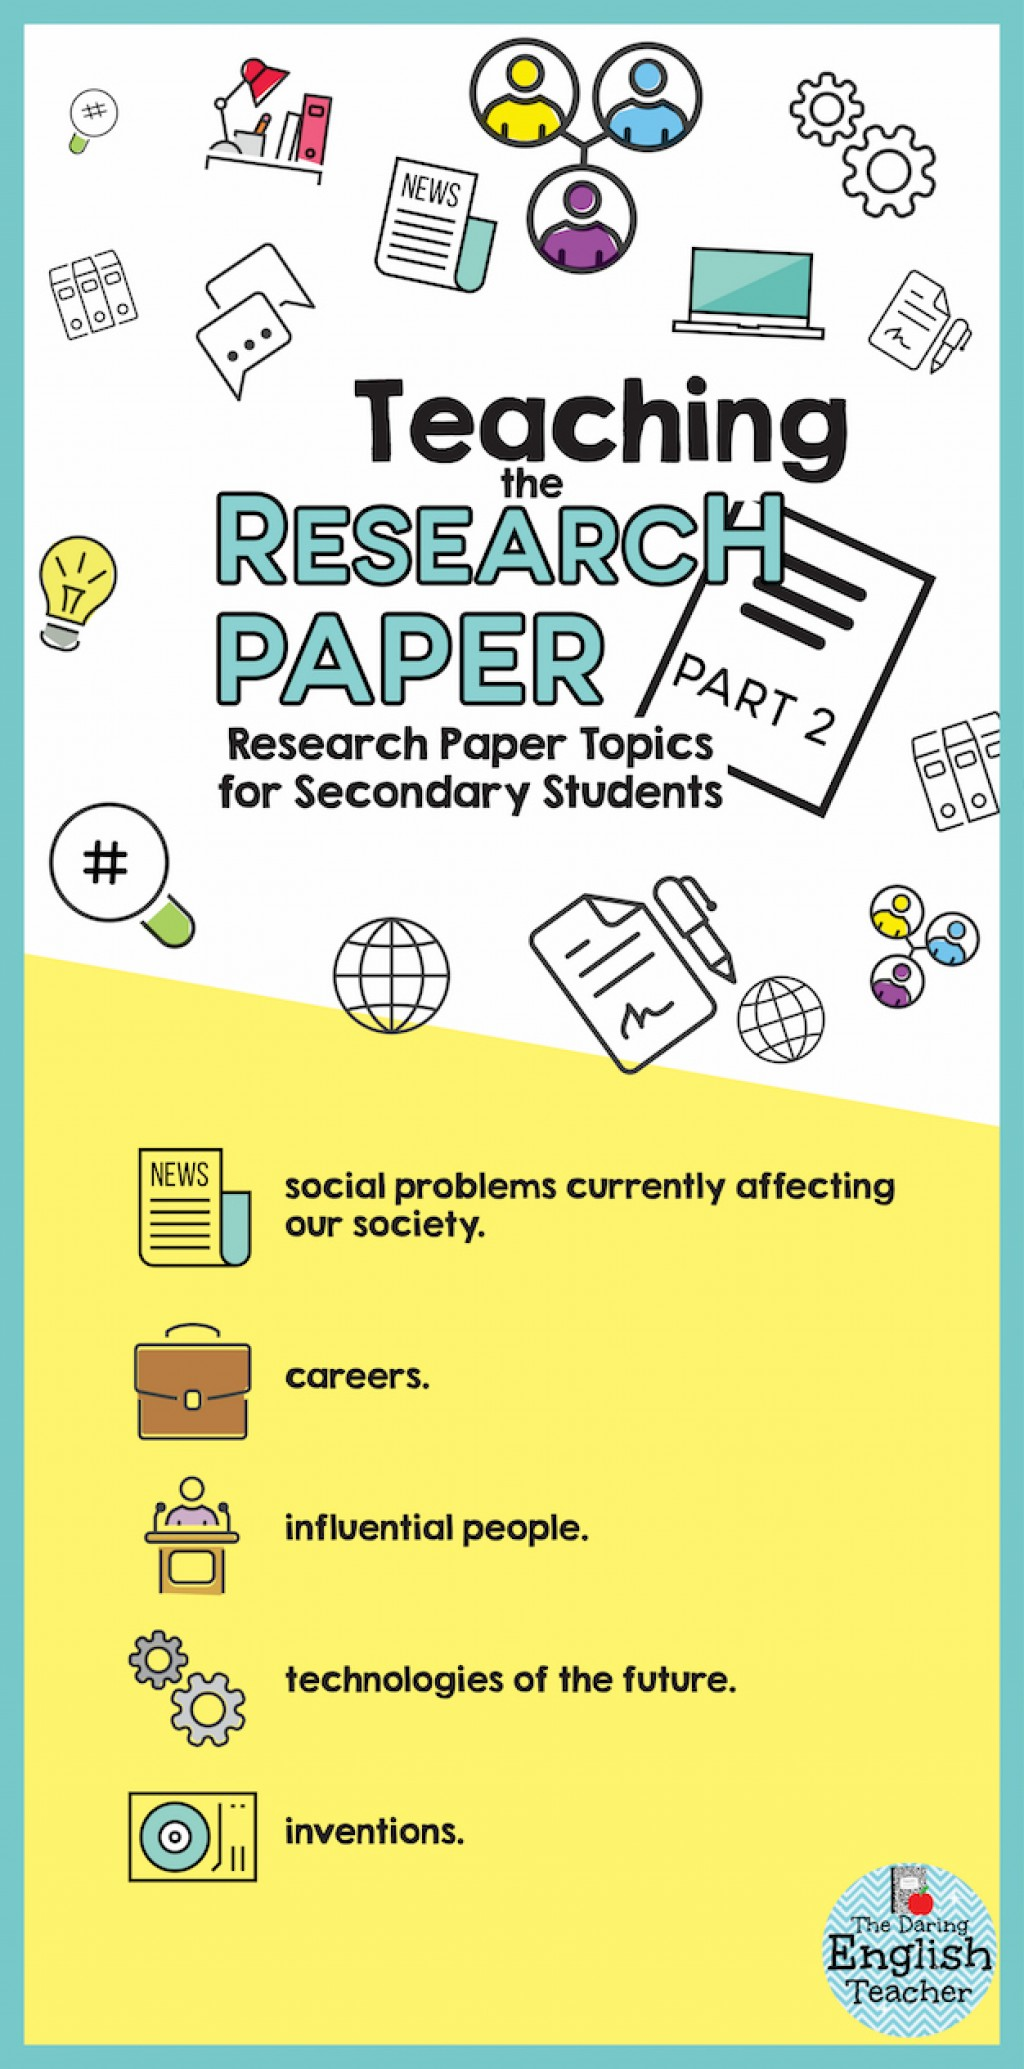 012 Research Paper Infographic2bp22b2 Topics High Incredible School Science Essay Holocaust Biology Large